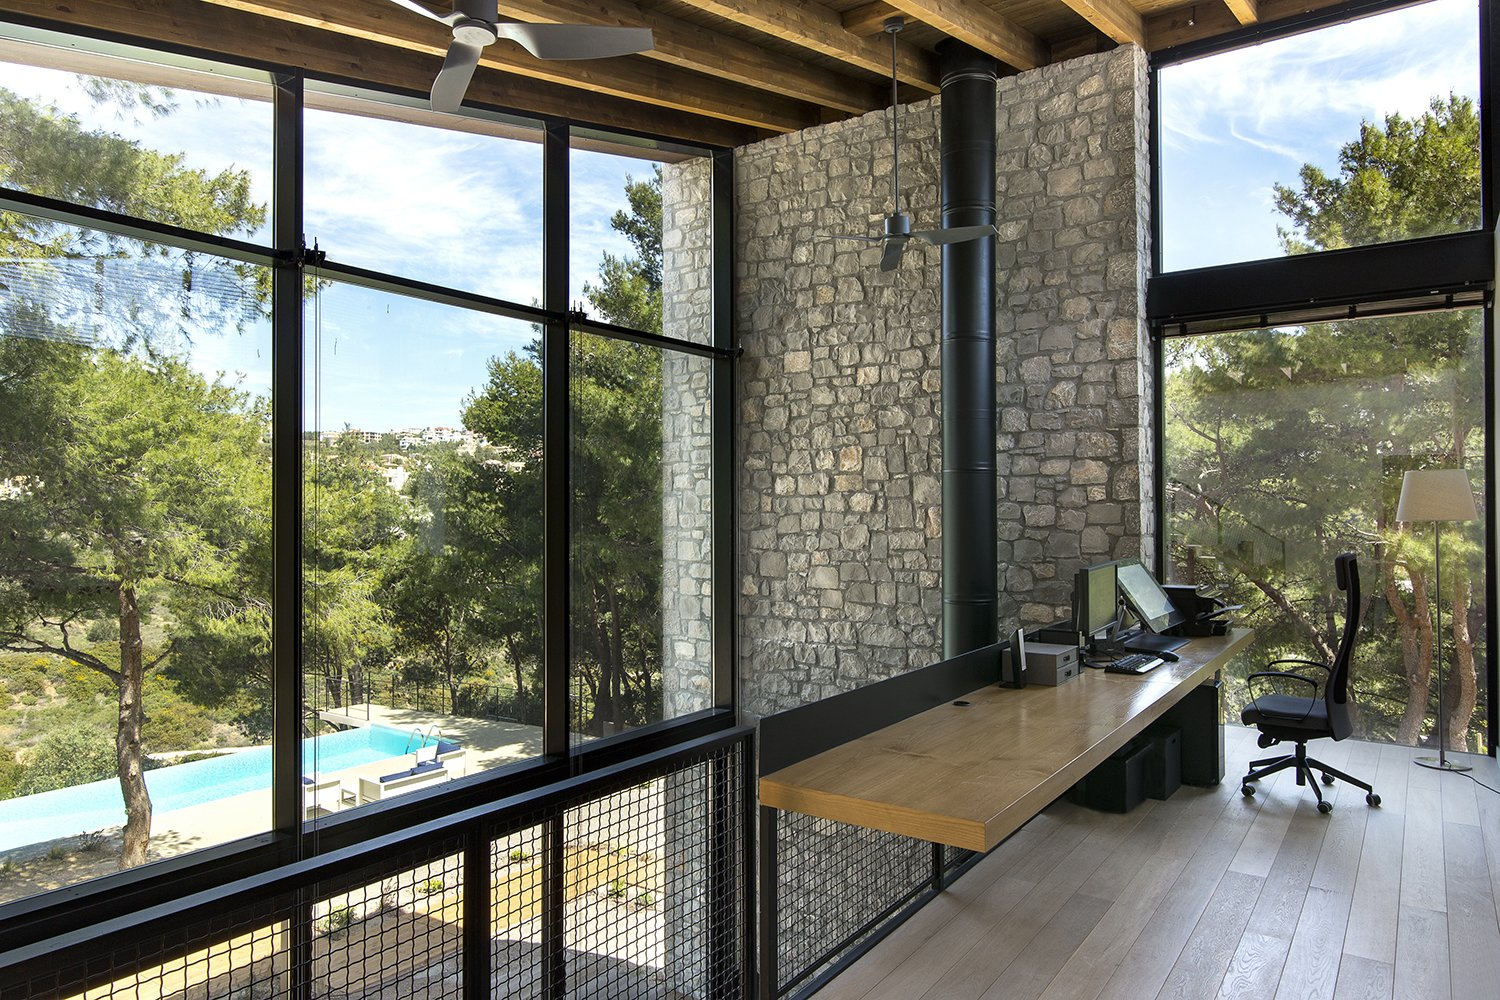 The facades open up to the view of the pines trees Tagged: Office, Study, Light Hardwood Floor, and Chair.  The Wedge House by Marianna Athanasiadou